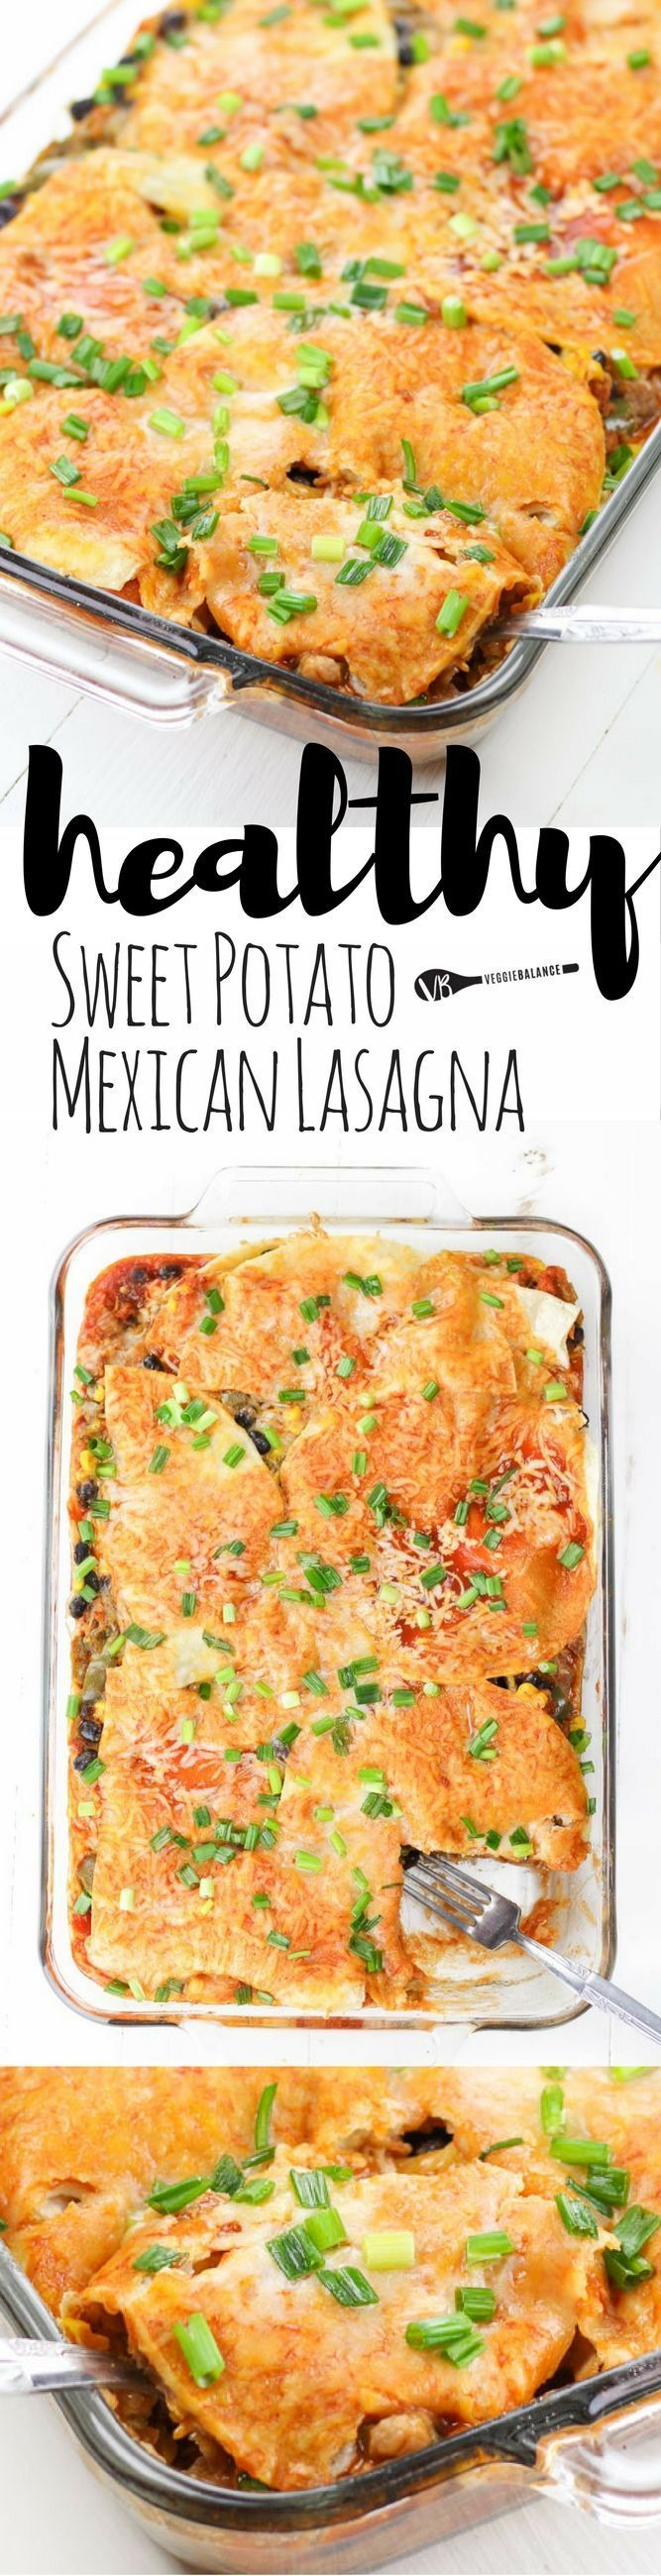 Sweet Potato Mexican Lasagna recipe is where comfort food meets healthy food. Sweet potato, black beans, and corn tossed in a spicy -sweet taco sauce layered between fluffy corn tortillas. It's a weeknight dinner with leftovers for lunch kind of heaven. (